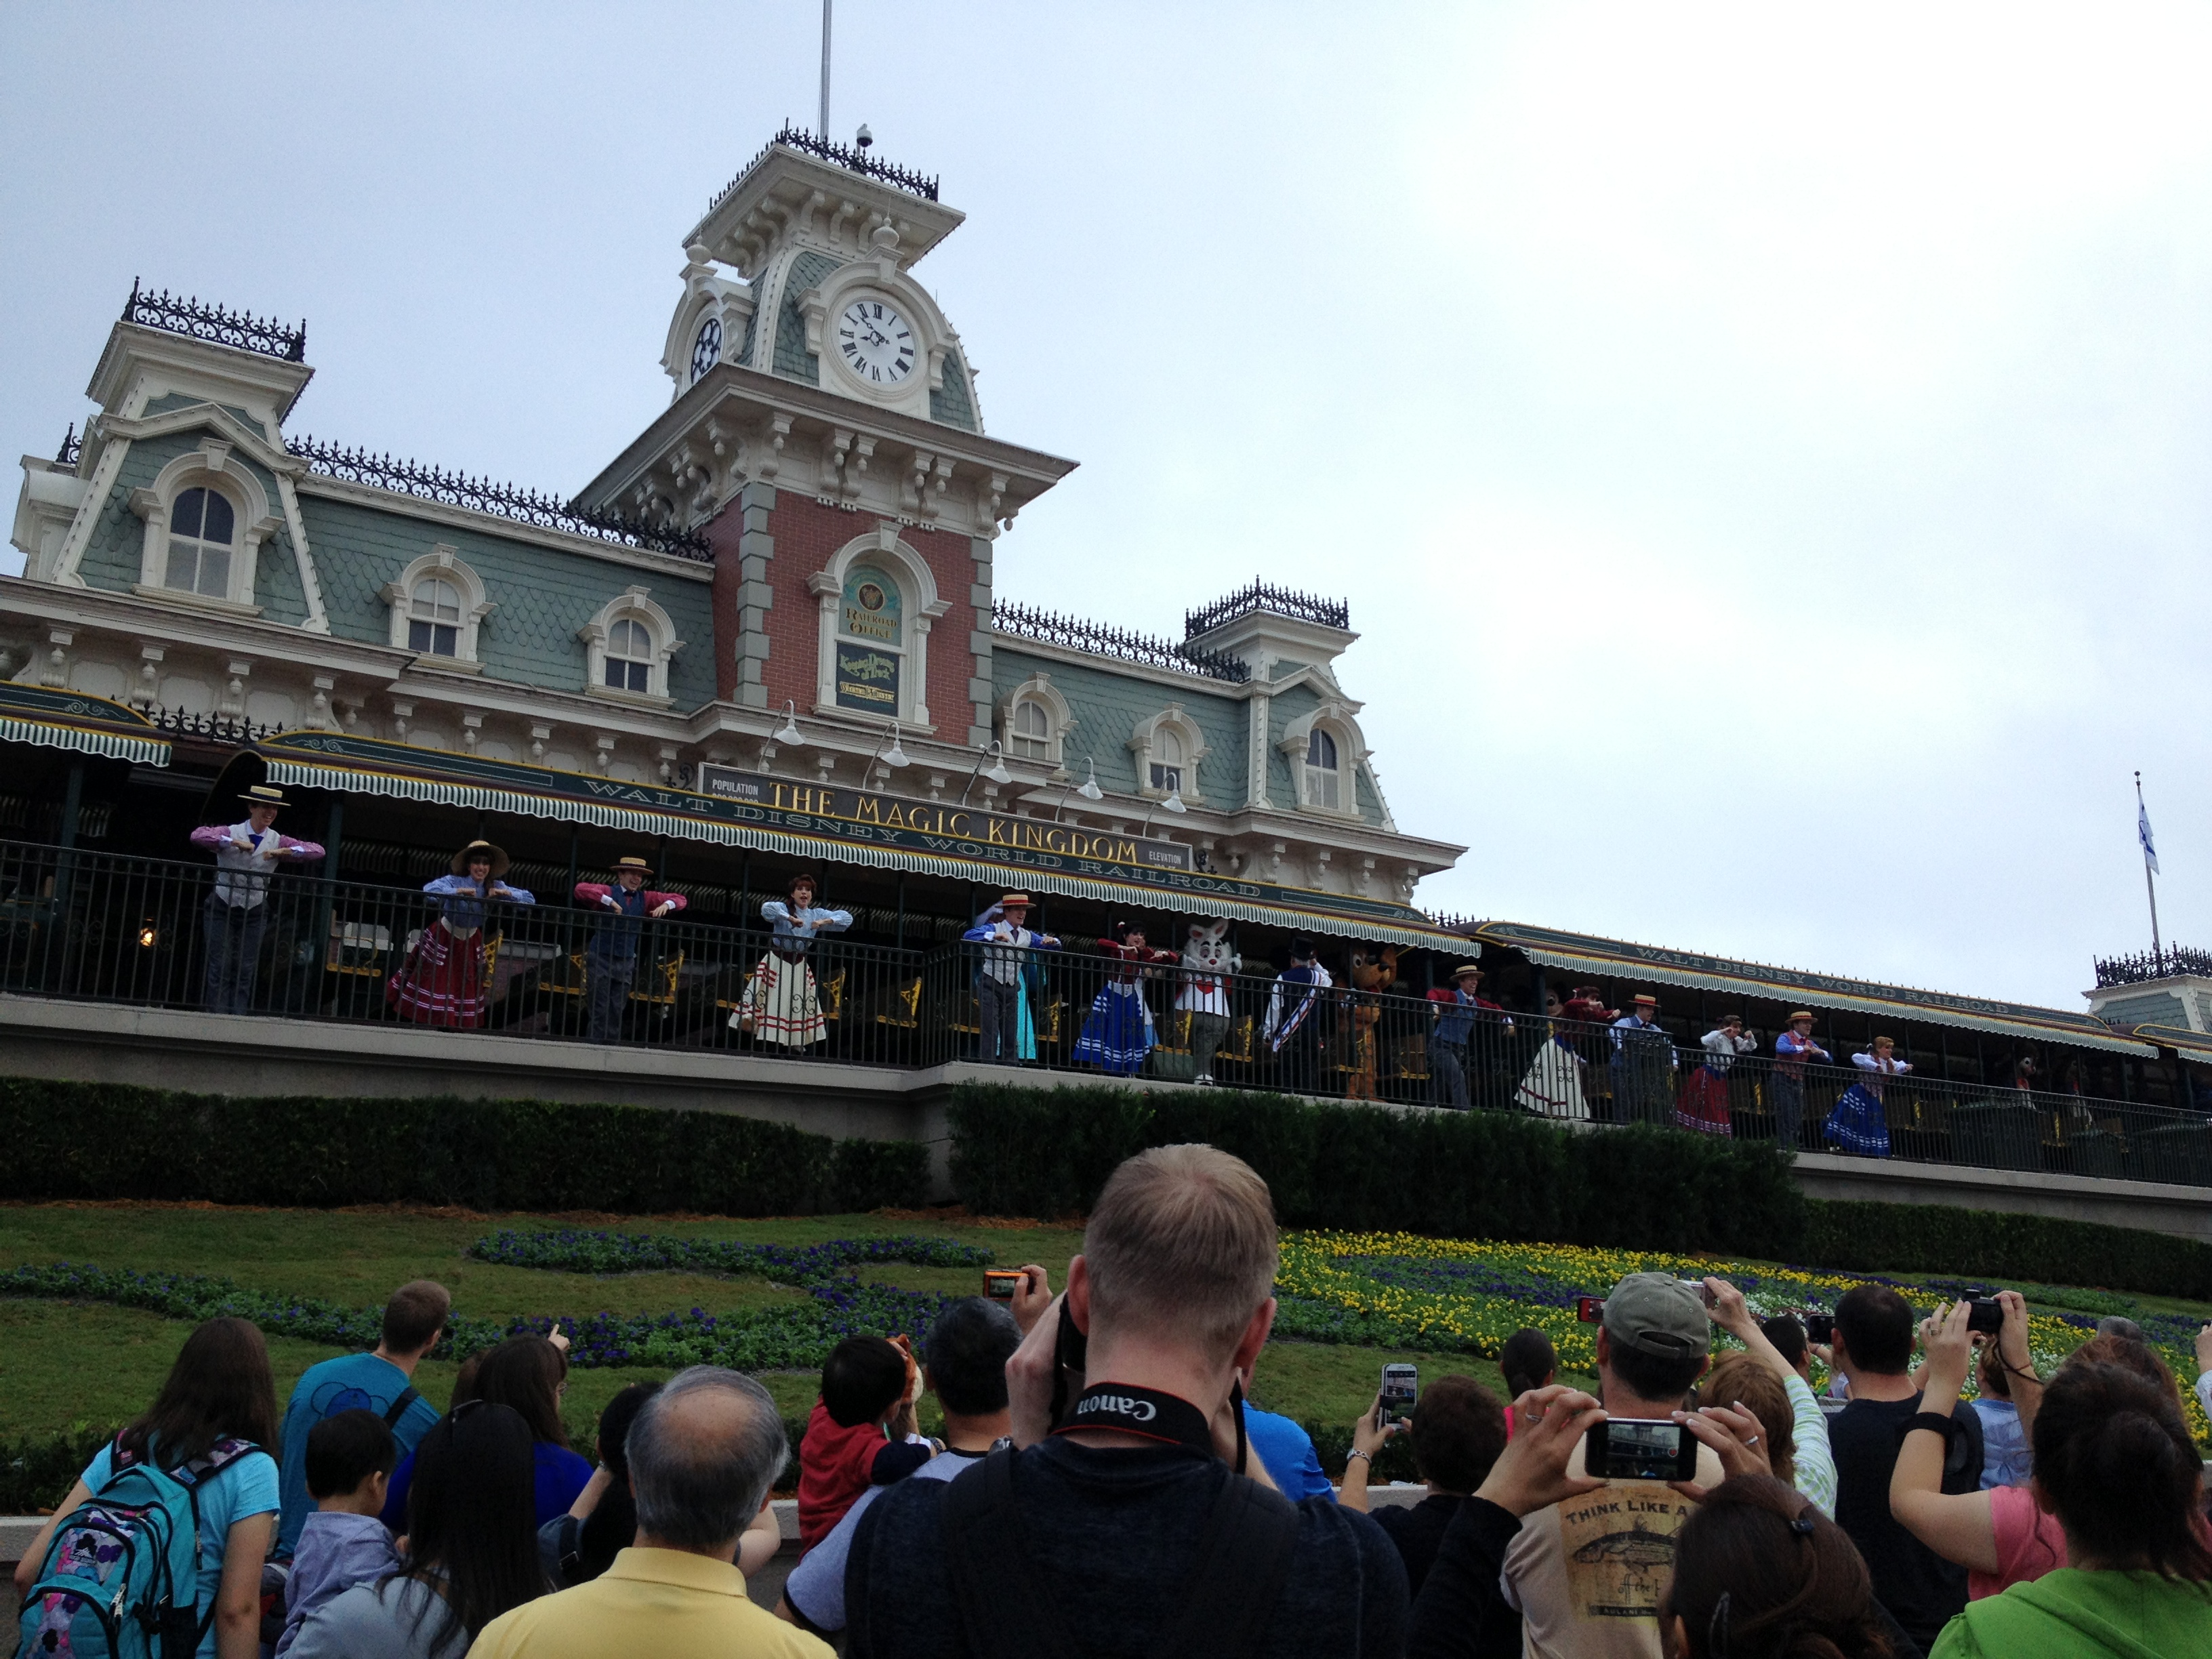 One Day In: Disney World – The Magic Kingdom